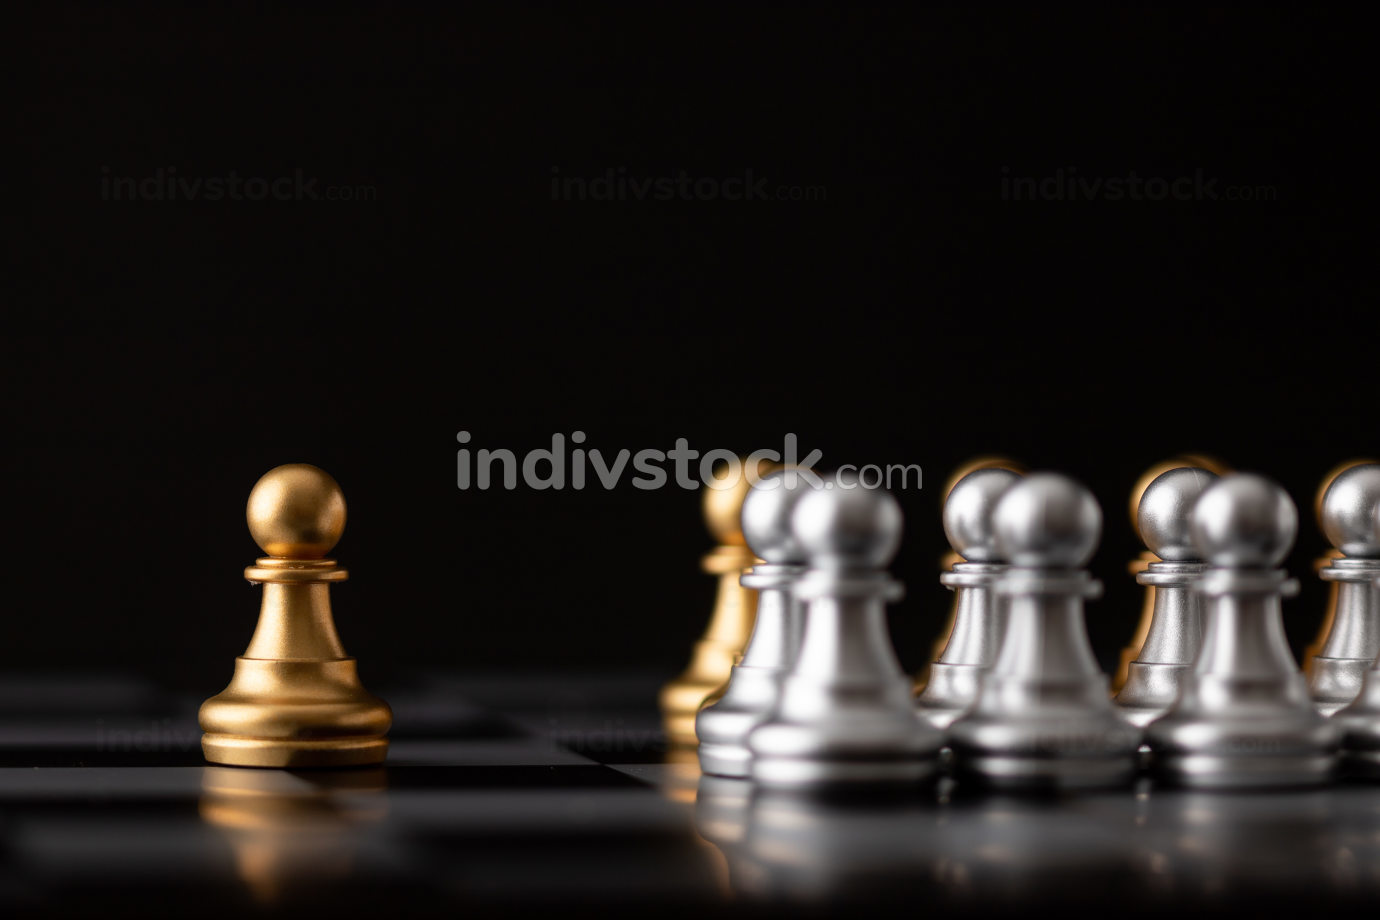 gold chessman is the leader